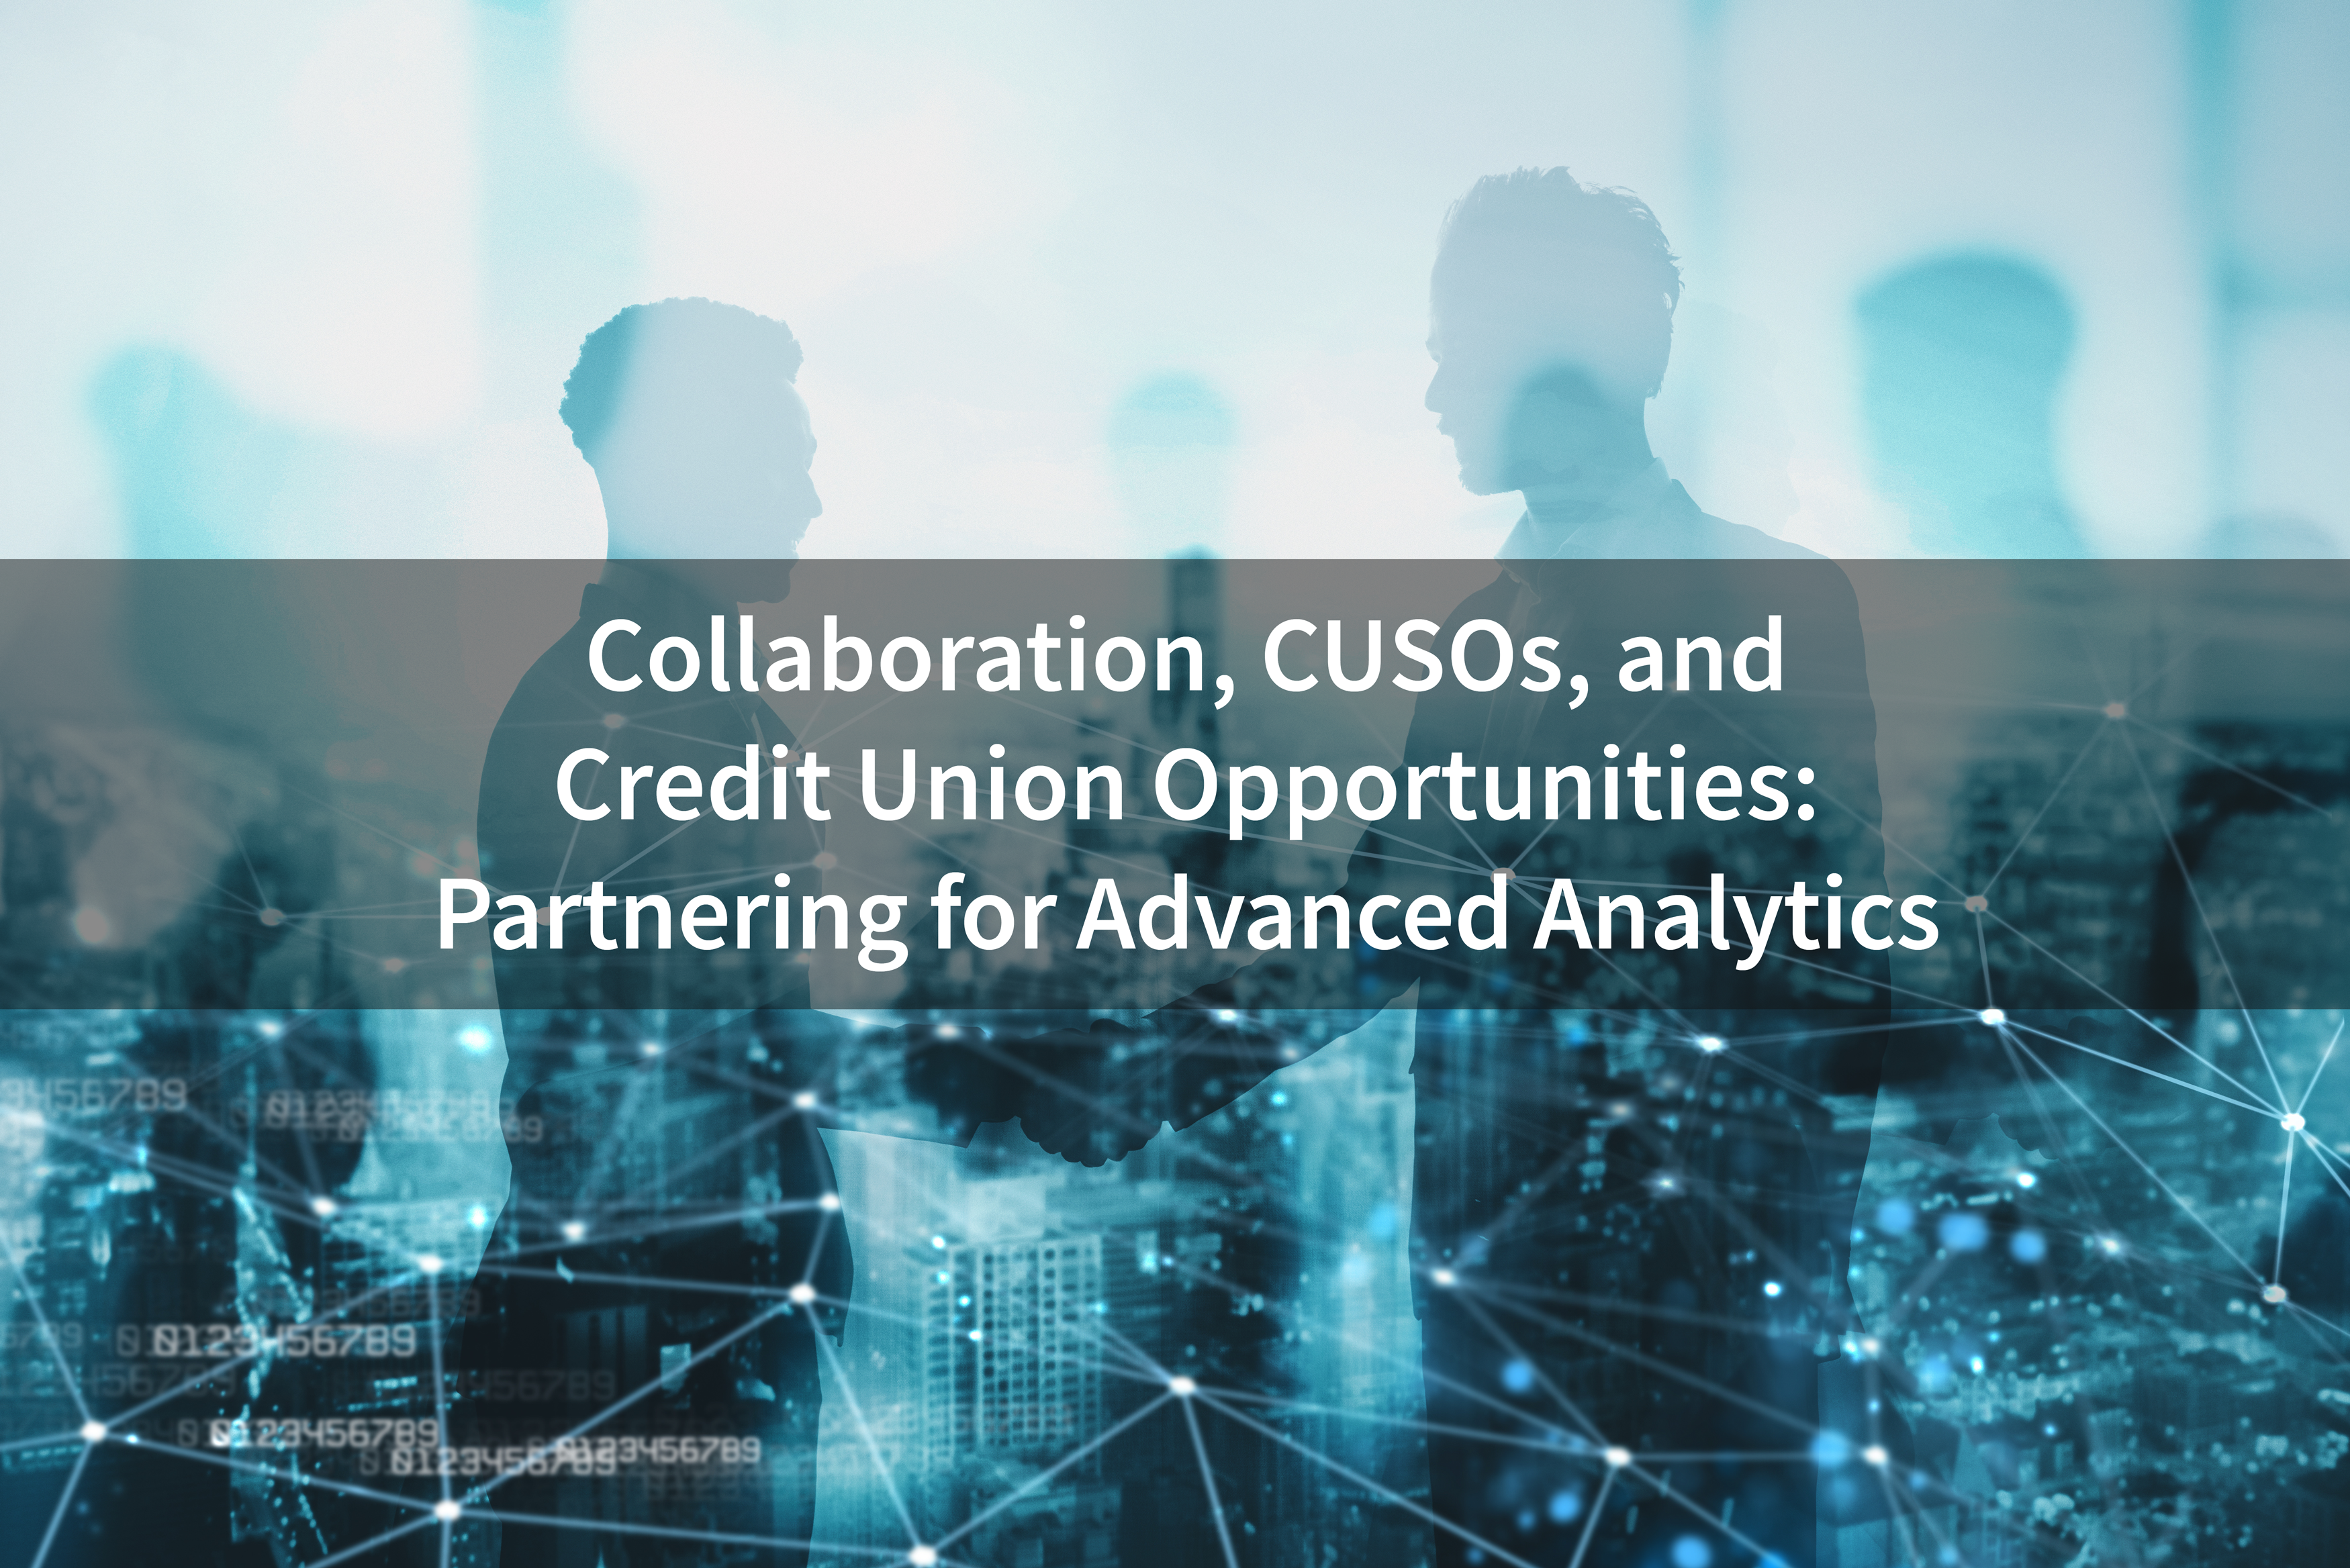 Collaboration,-CUSOs,-and-Credit-Union-Opportunities---Partnering-for-Advanced-Analytics